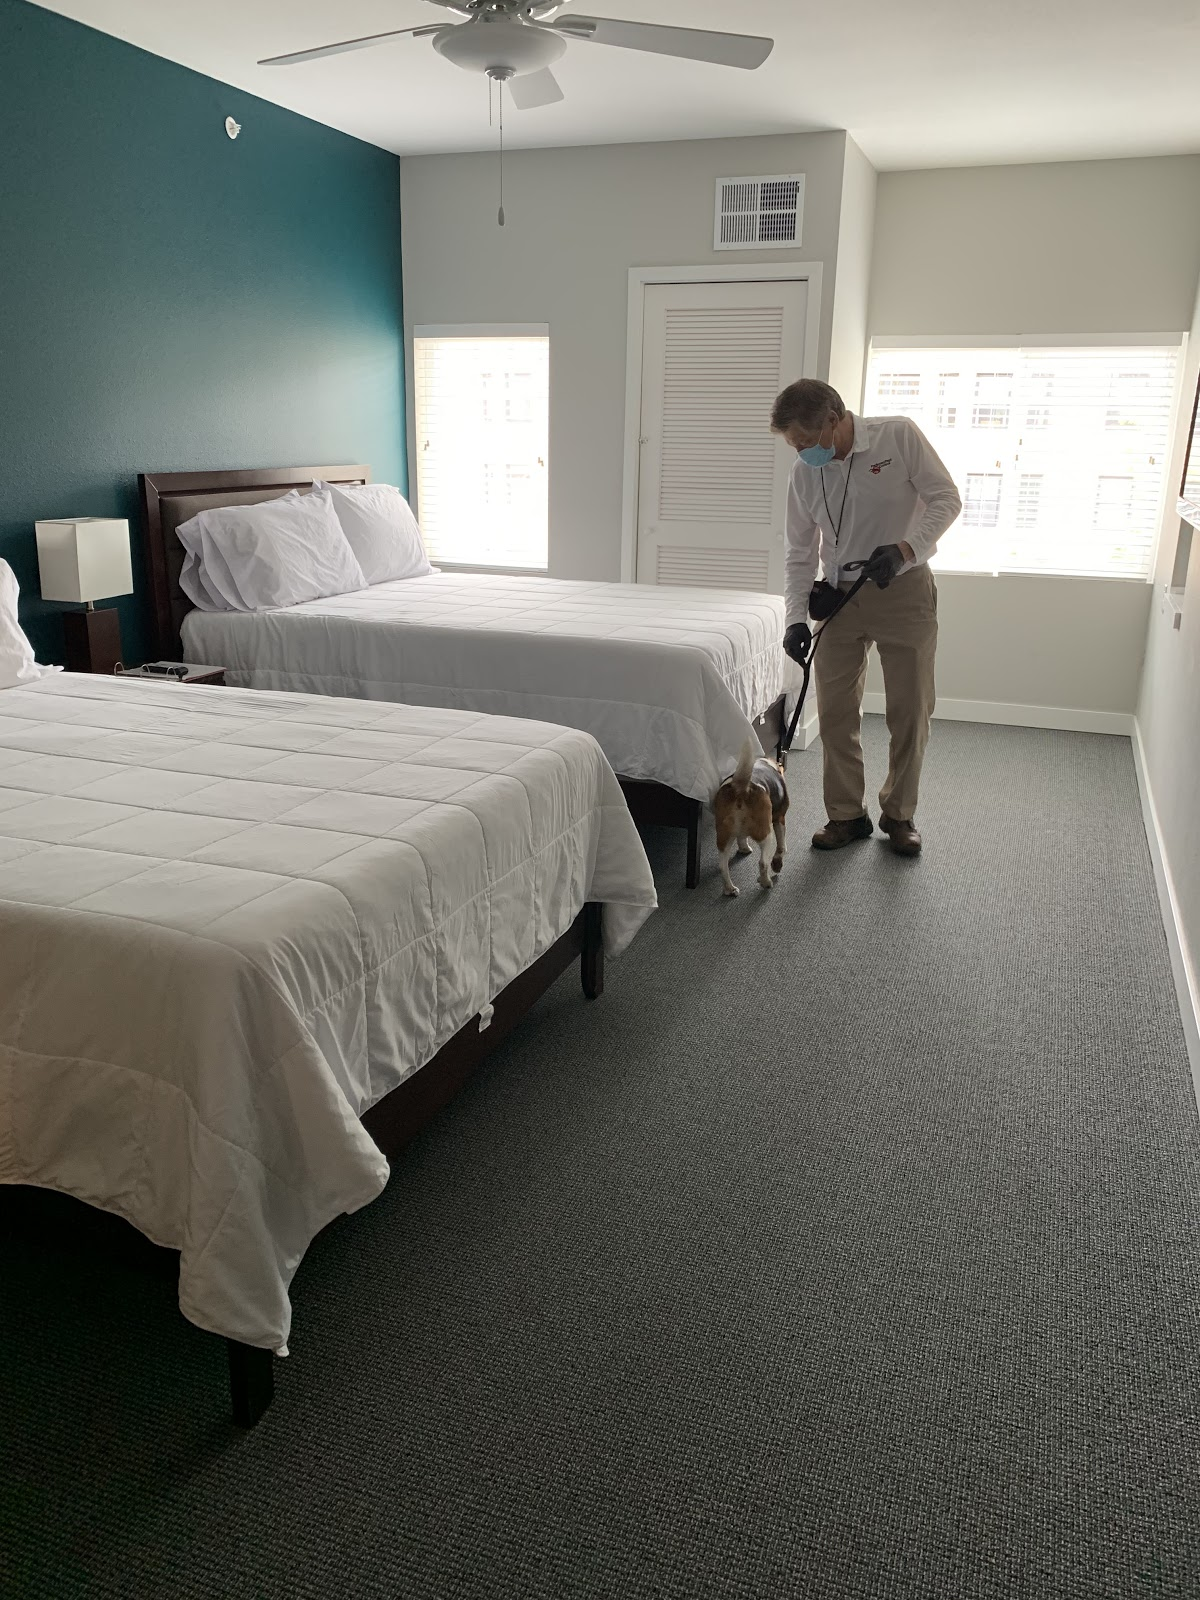 Bed bug detection dog and exterminator performing search